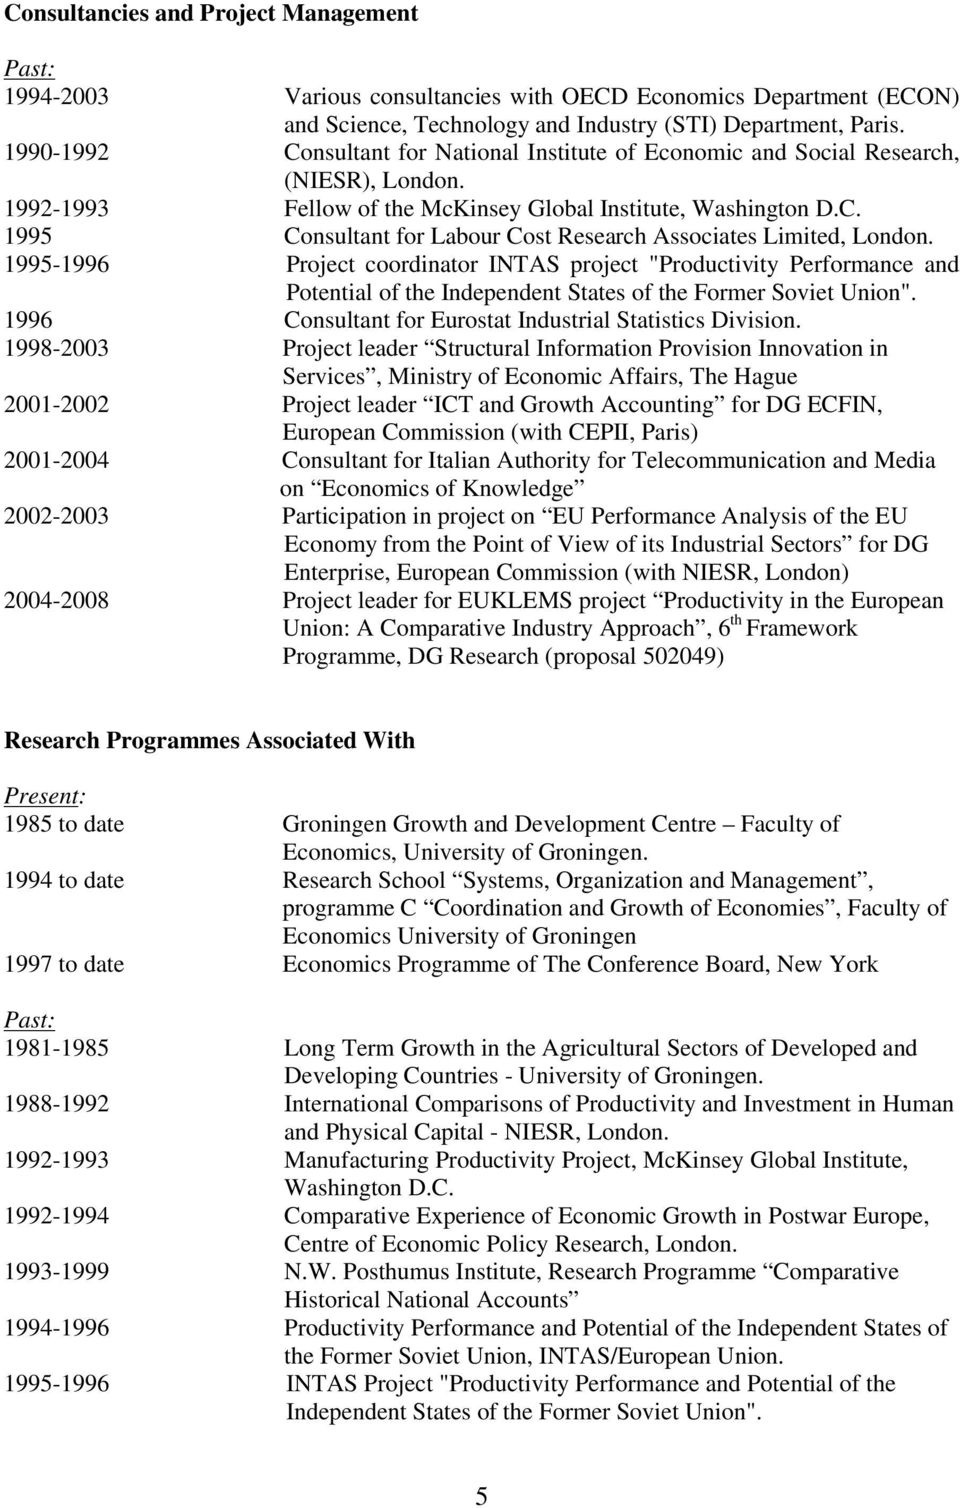 "1995-1996 Project coordinator INTAS project ""Productivity Performance and Potential of the Independent States of the Former Soviet Union"". 1996 Consultant for Eurostat Industrial Statistics Division."